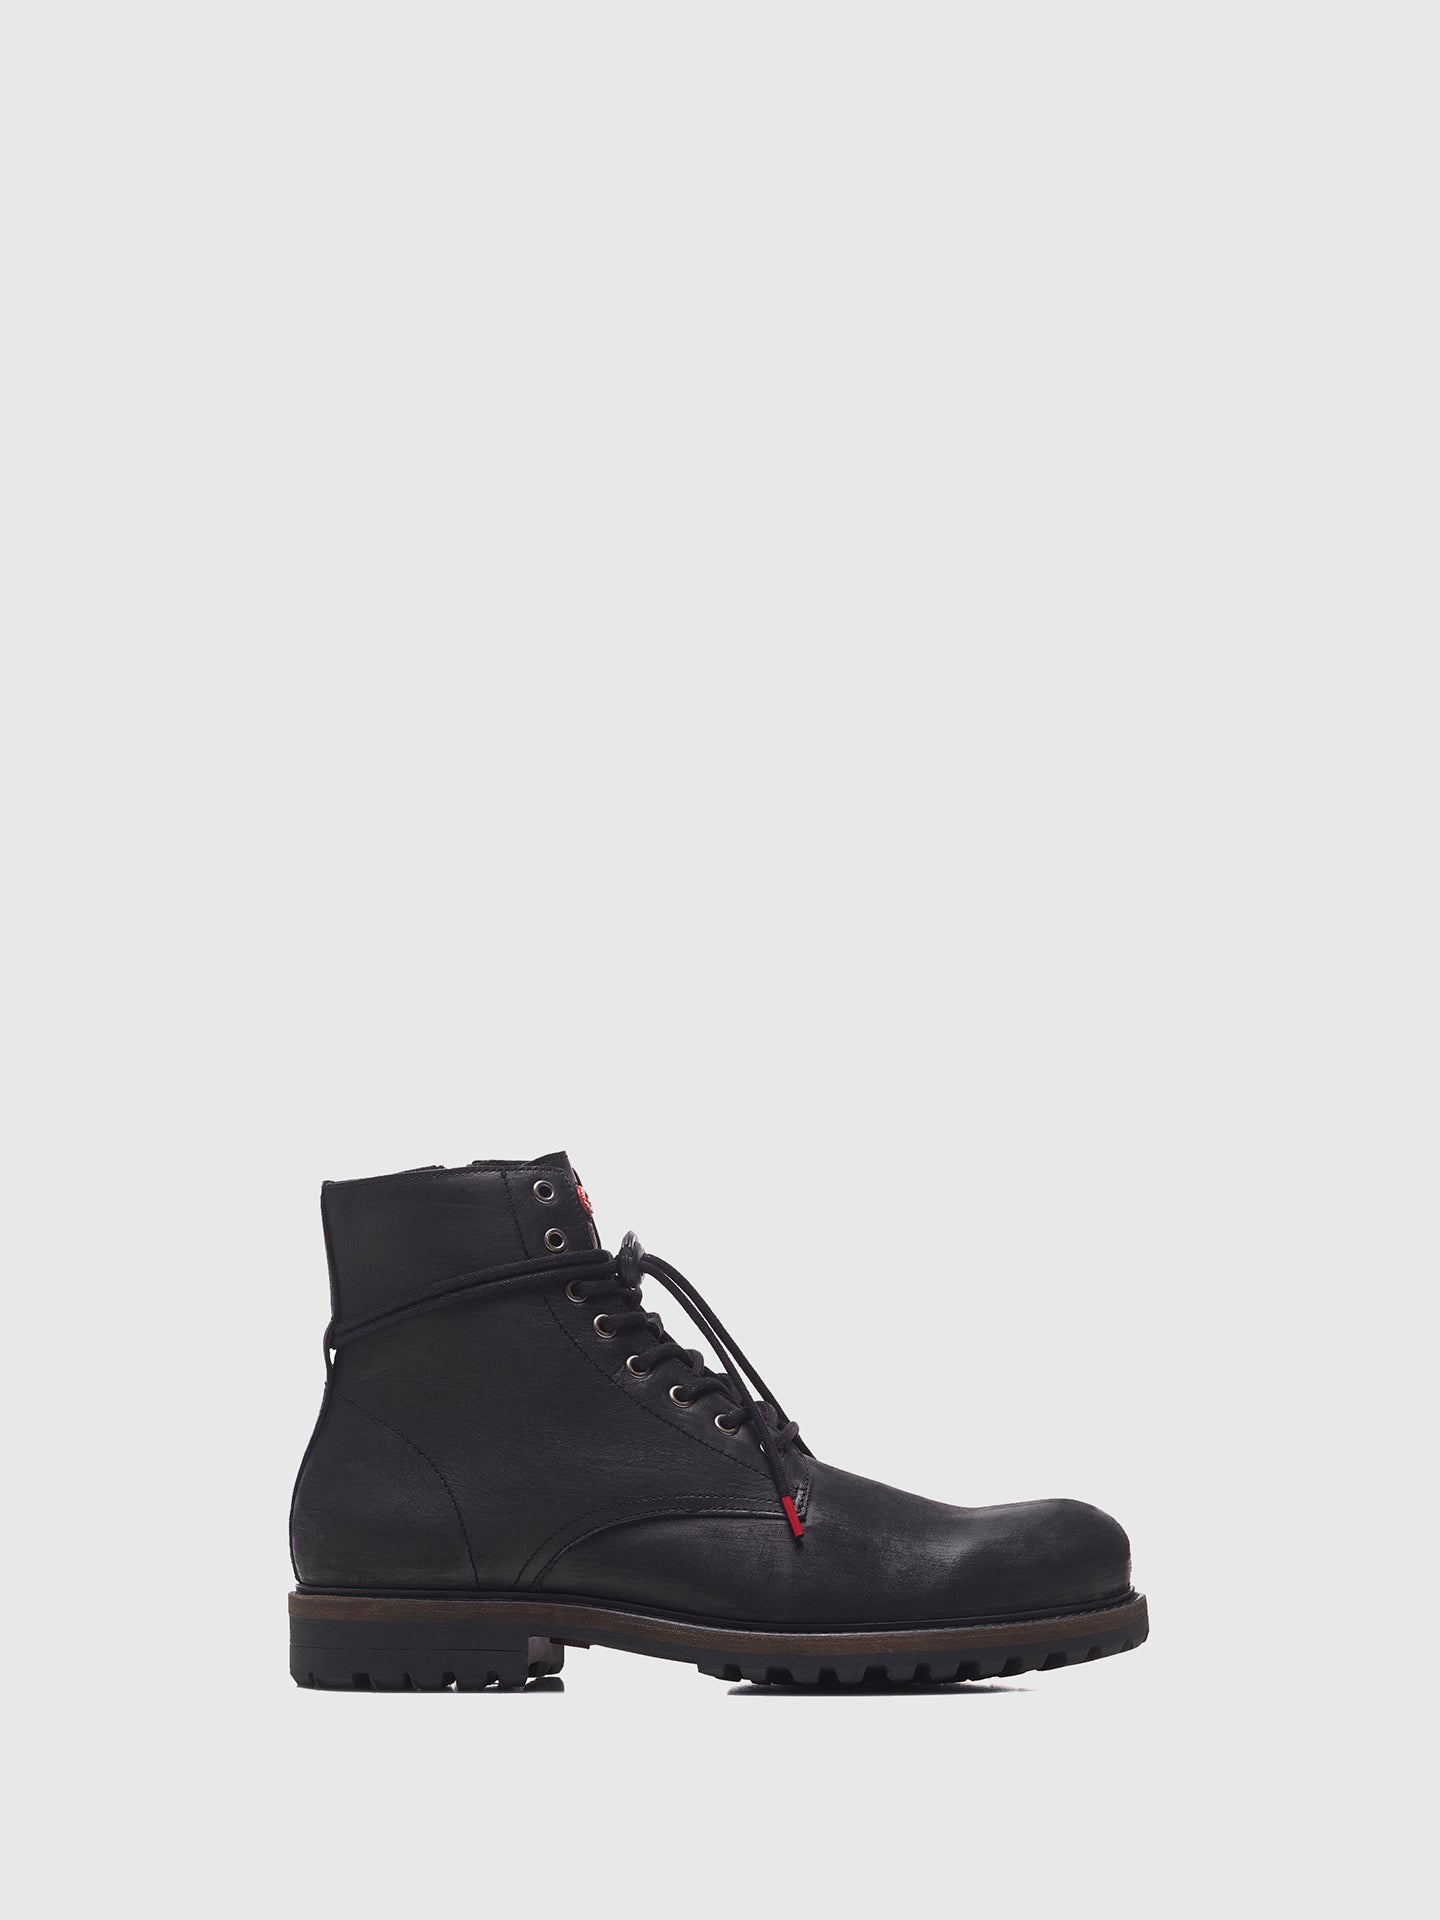 Nobrand Black Zip Up Boots